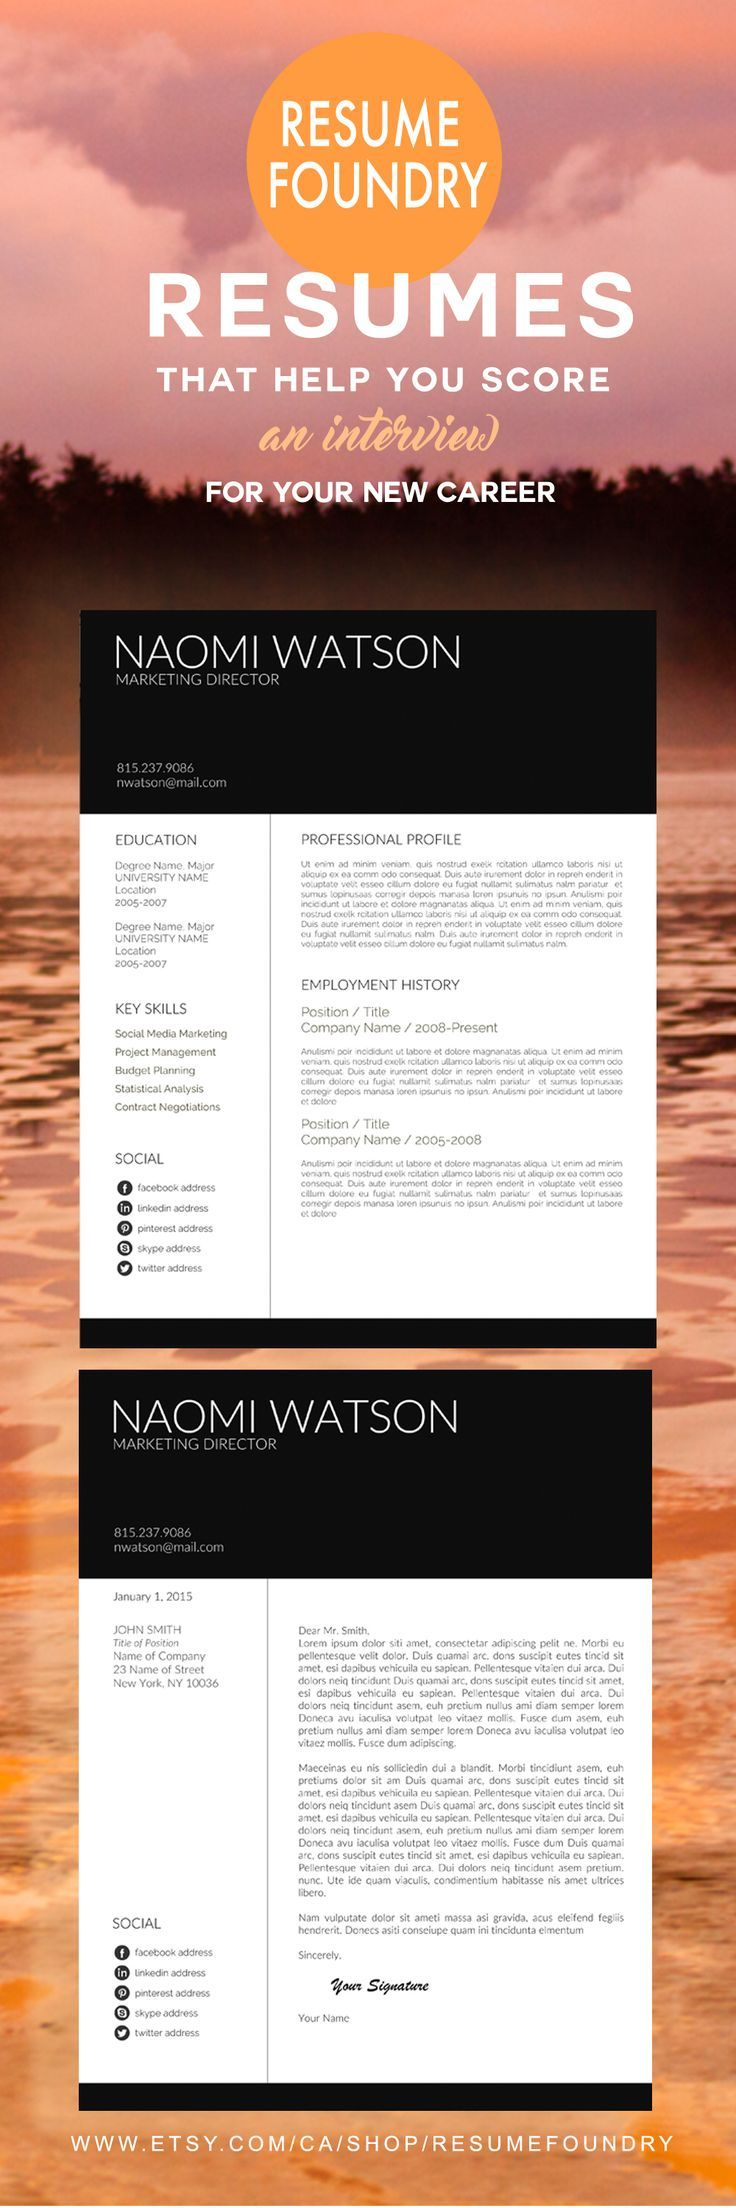 medical billing resumes%0A Modern Dwell Resume Template  the Naomi